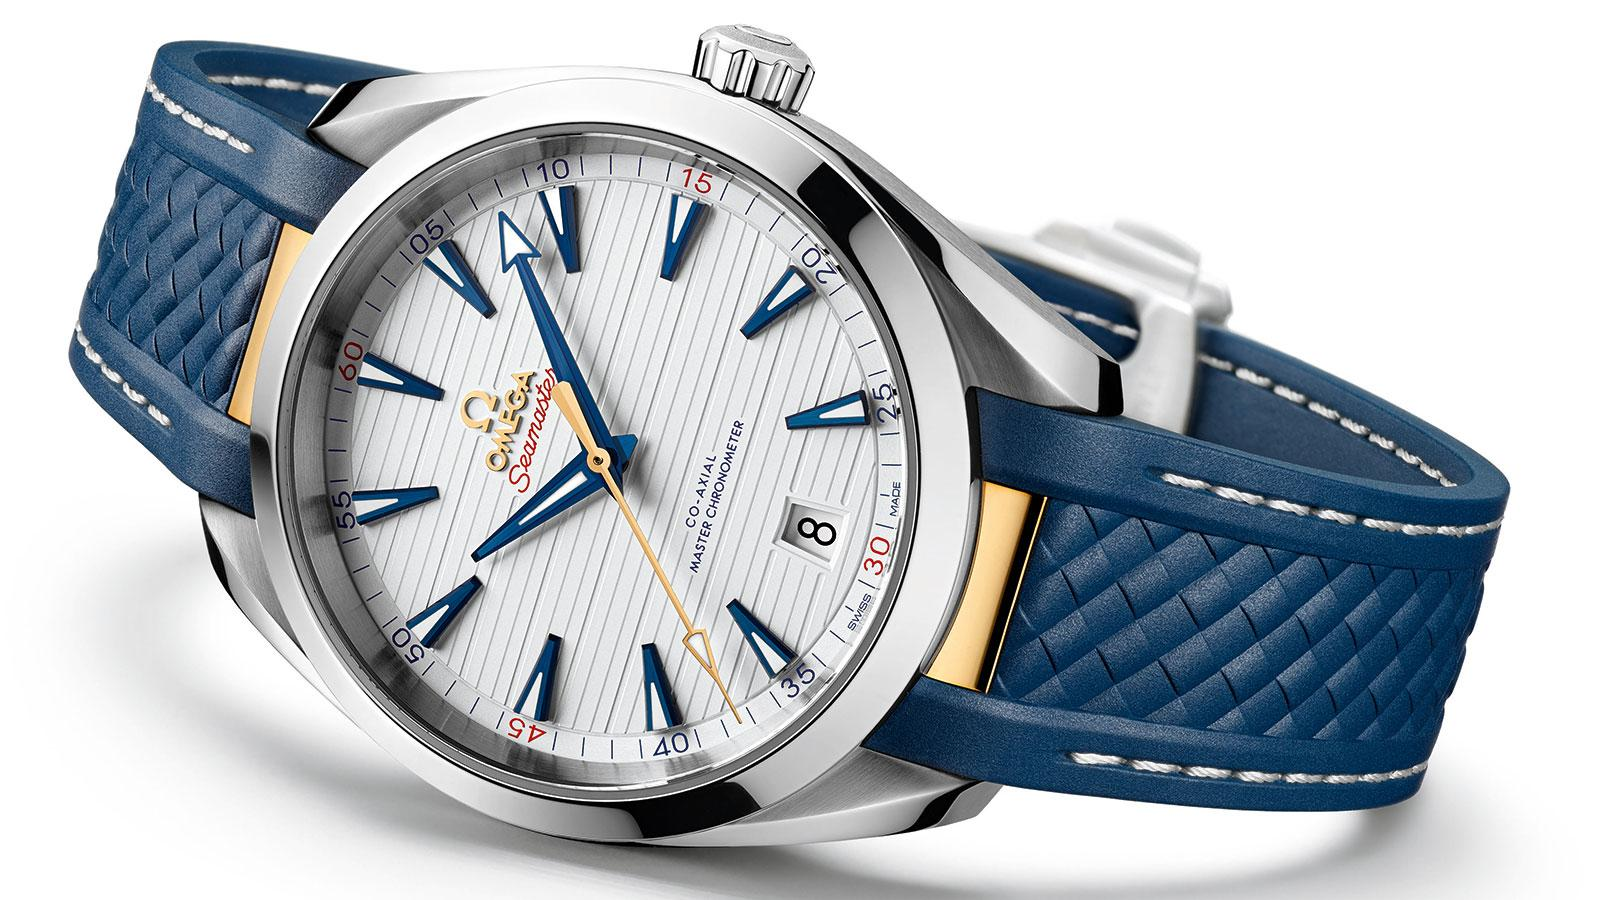 Omega Celebrates Golf With New Ryder Cup Watch